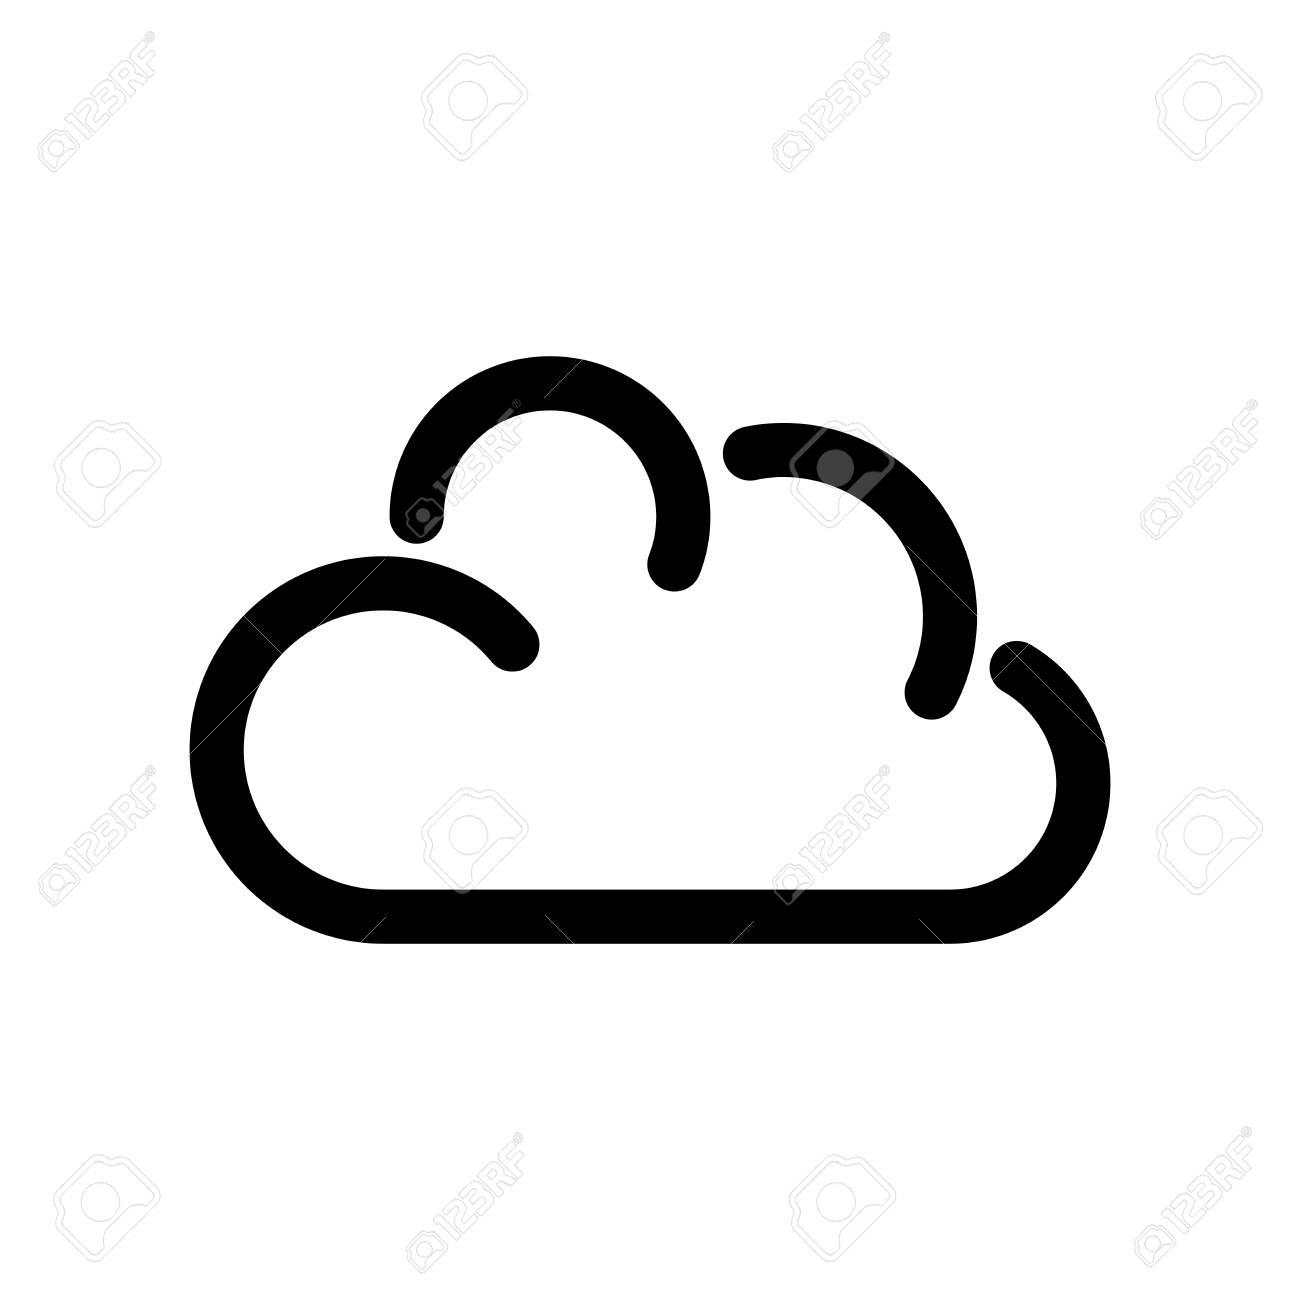 cloud icon. symbol of online storage. outline modern design element...  royalty free cliparts, vectors, and stock illustration. image 95341930.  123rf